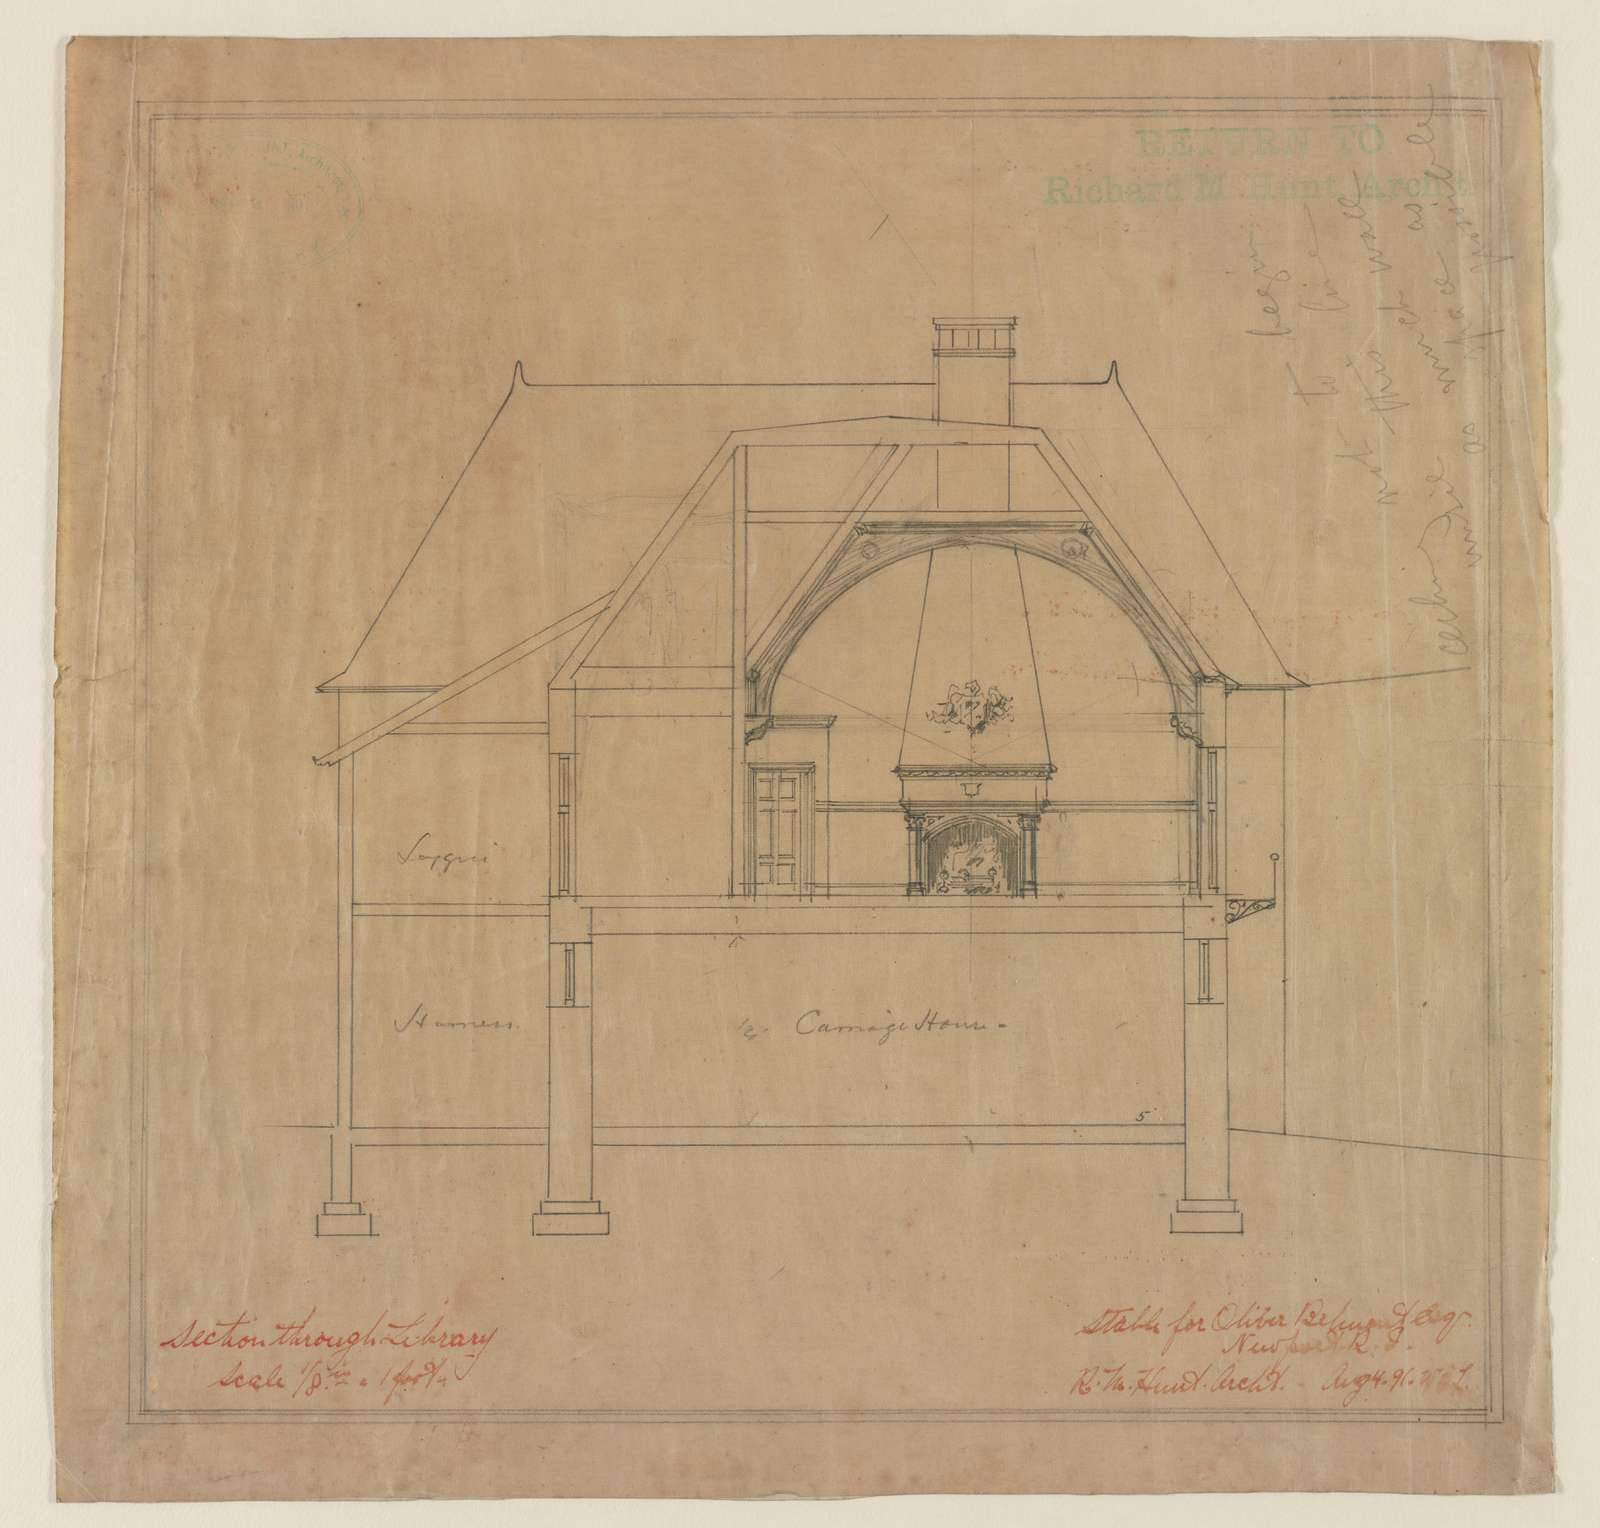 Stable for Oliver Belmont Esq., Newport, R.I. Section through library / R.M. Hunt, arch't.